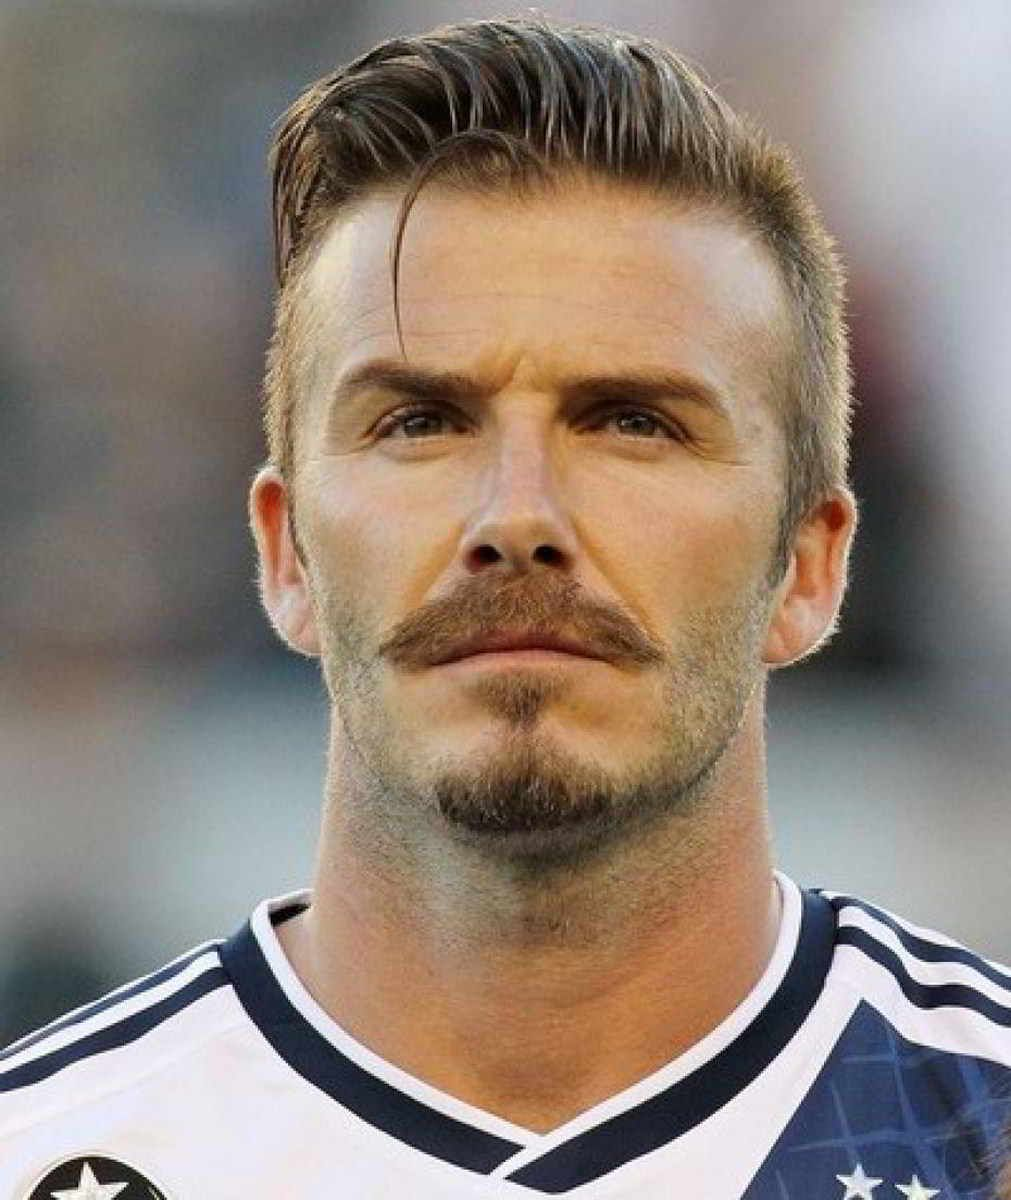 25 David Beckham Hairstyles 2019 advise